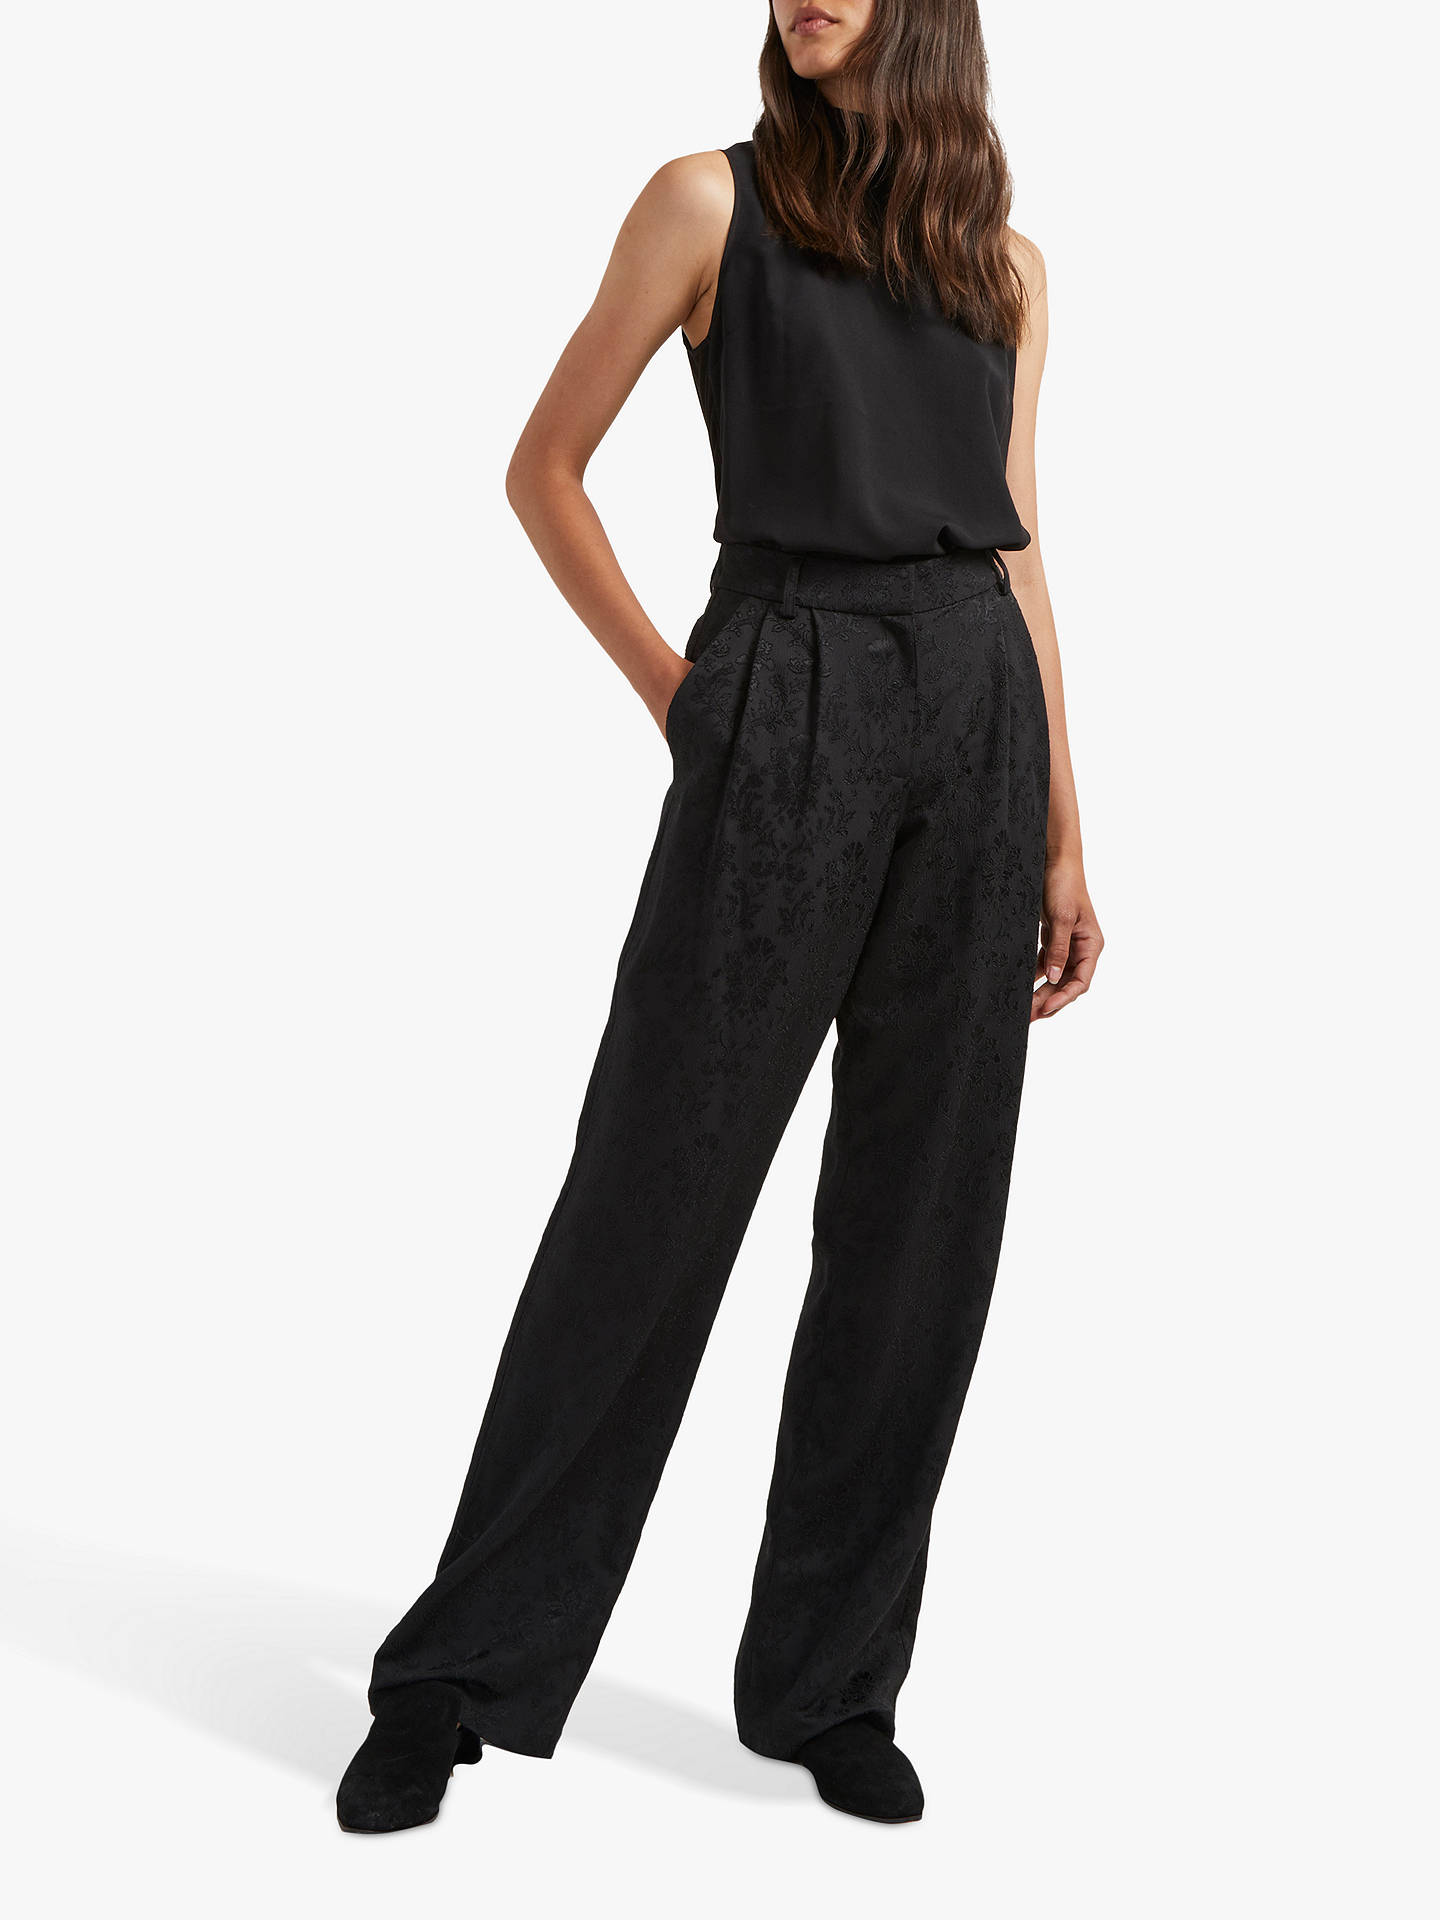 f032cc6b049 Buy French Connection Jane Jacquard Trousers, Black, 8 Online at  johnlewis.com ...